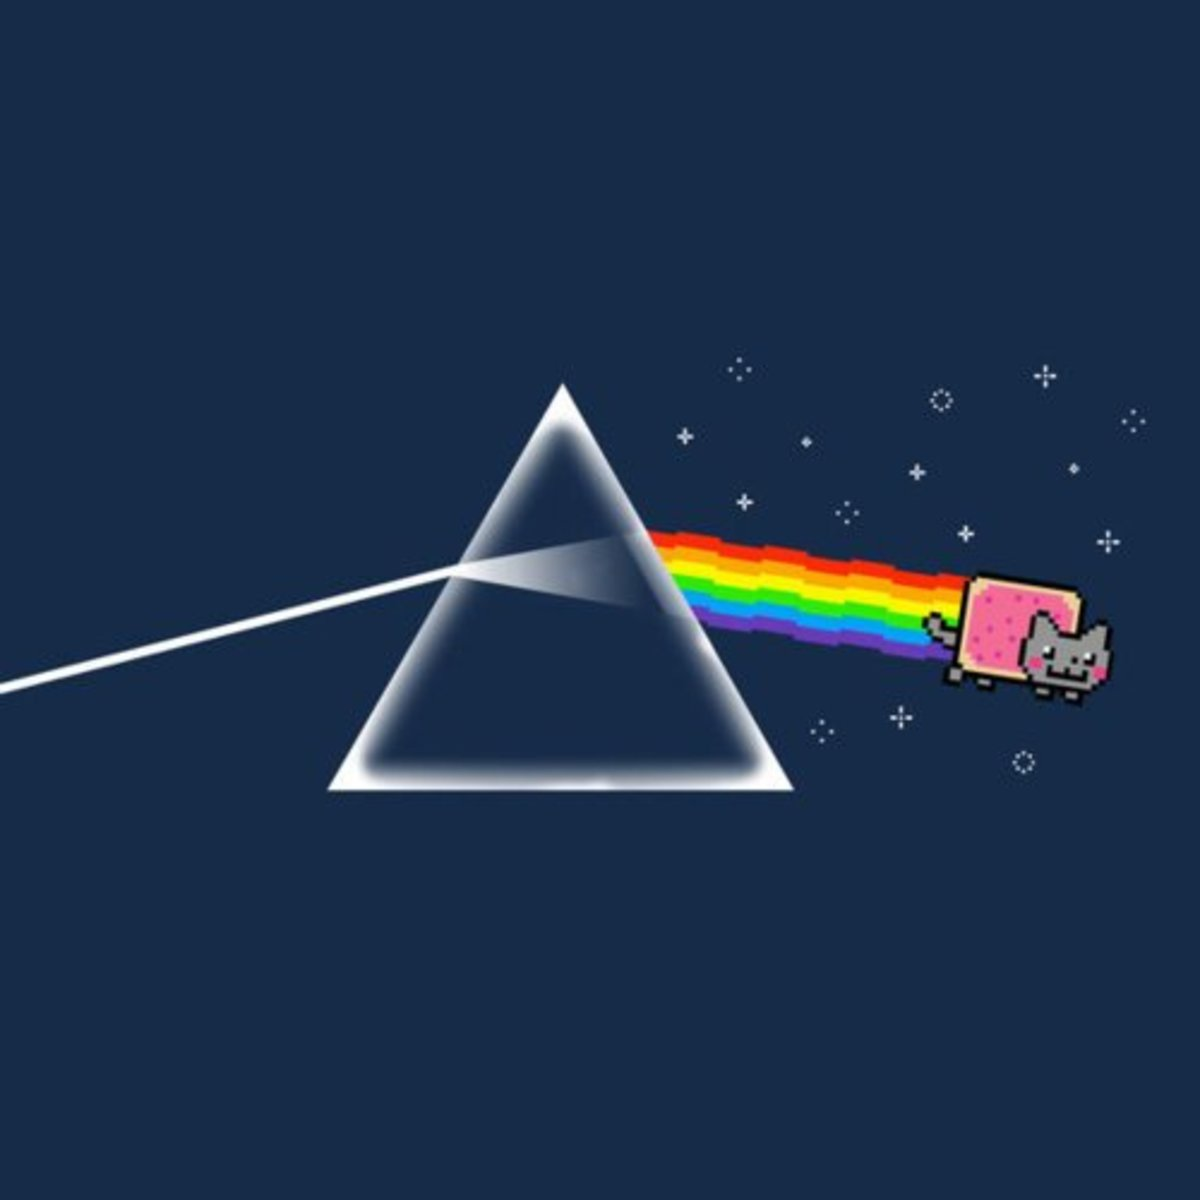 Where does bad light go? To a prism.